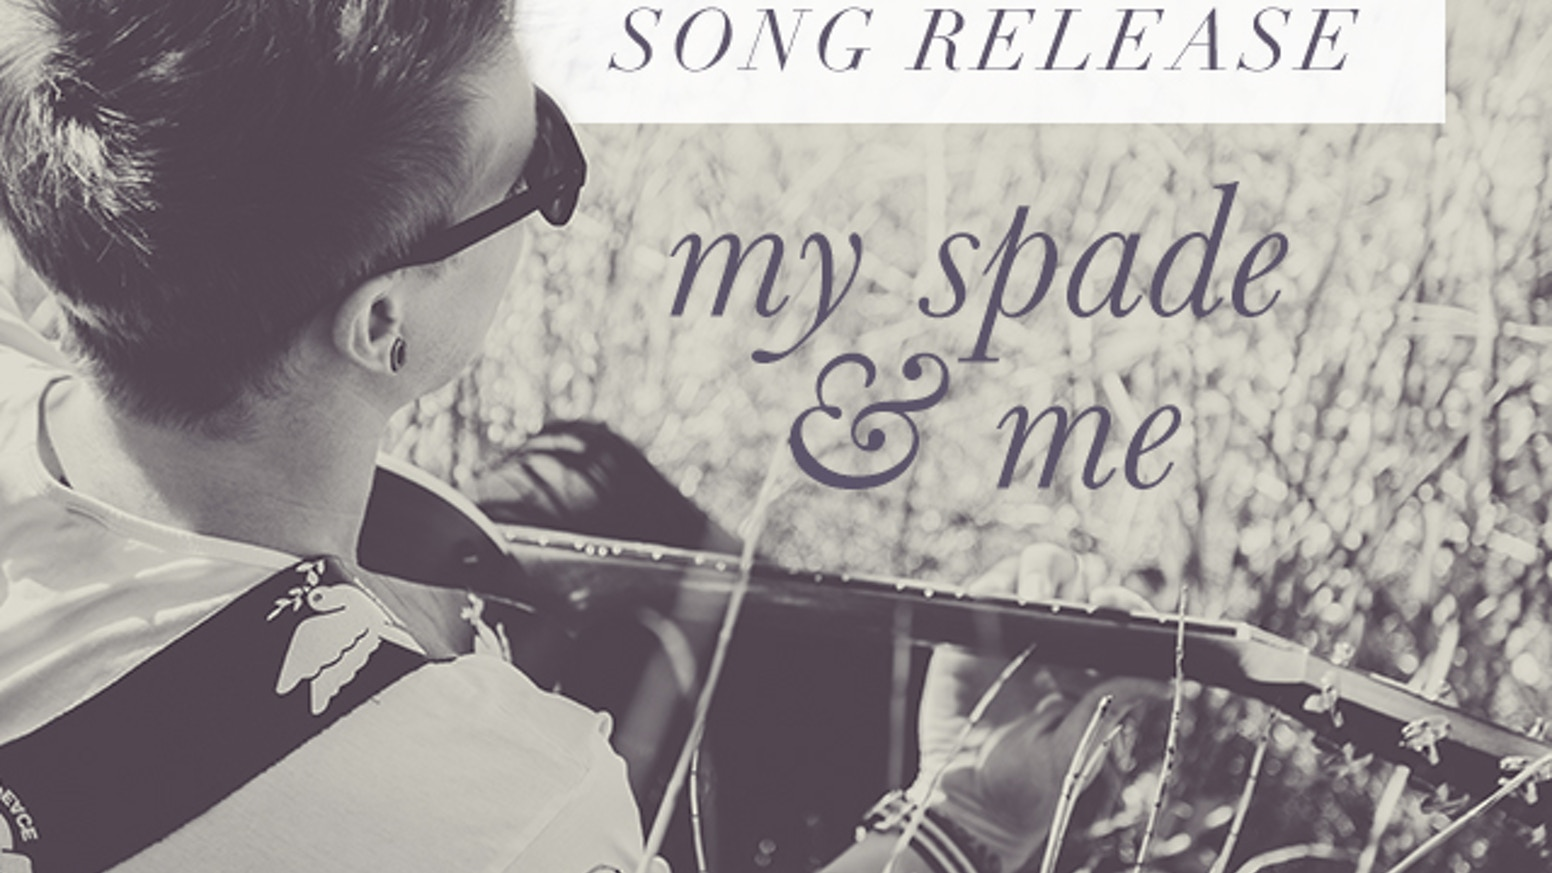 My Spade & Me - Free Song Release by Tom Hollow » FAQ